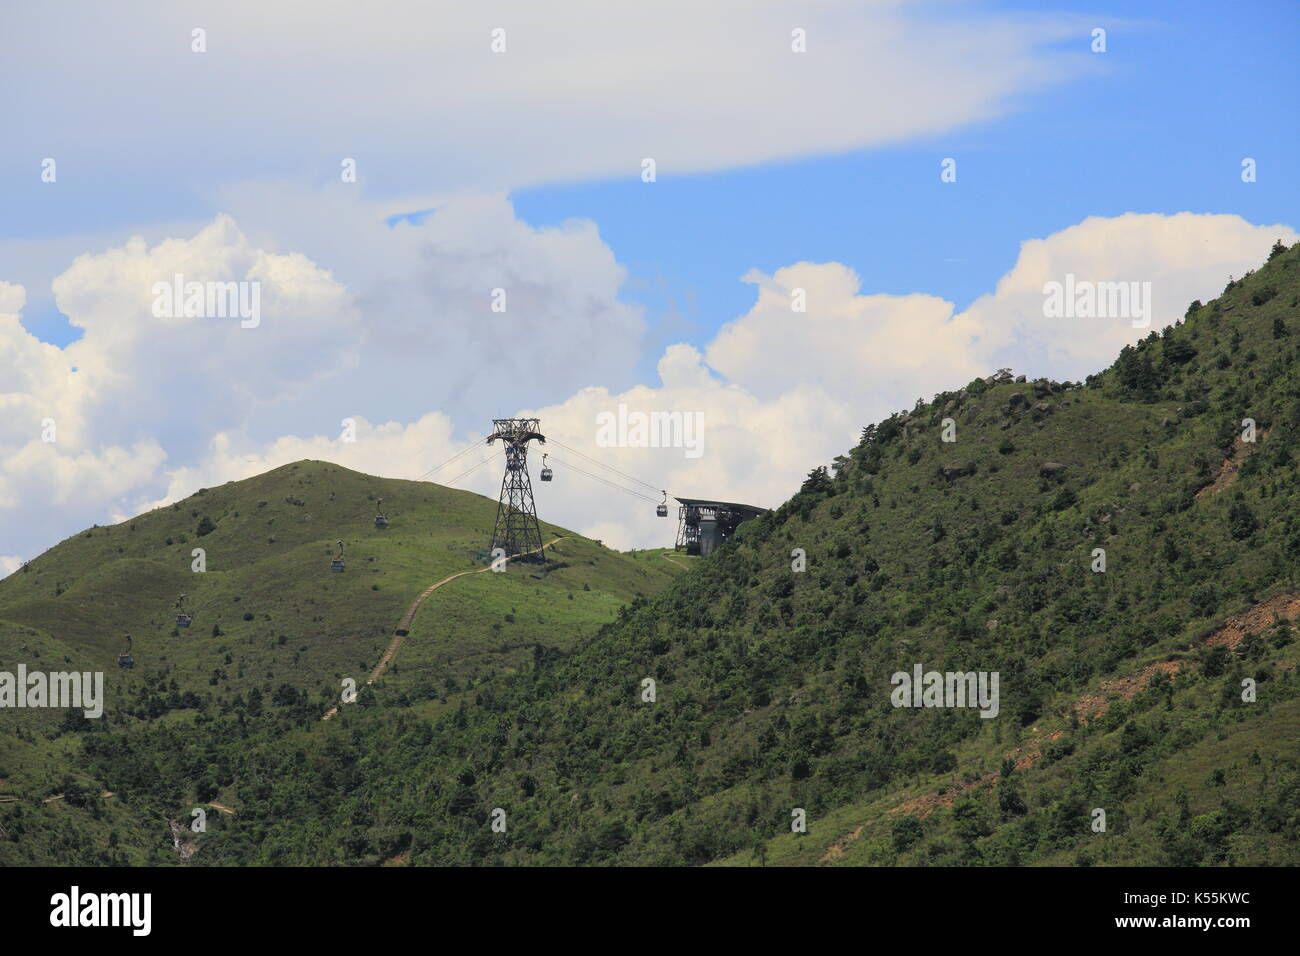 the beautiful weather in summer from Lantau Island to south china sea, with the view of Shek Pik Reservoir in Hong Kong - Stock Image